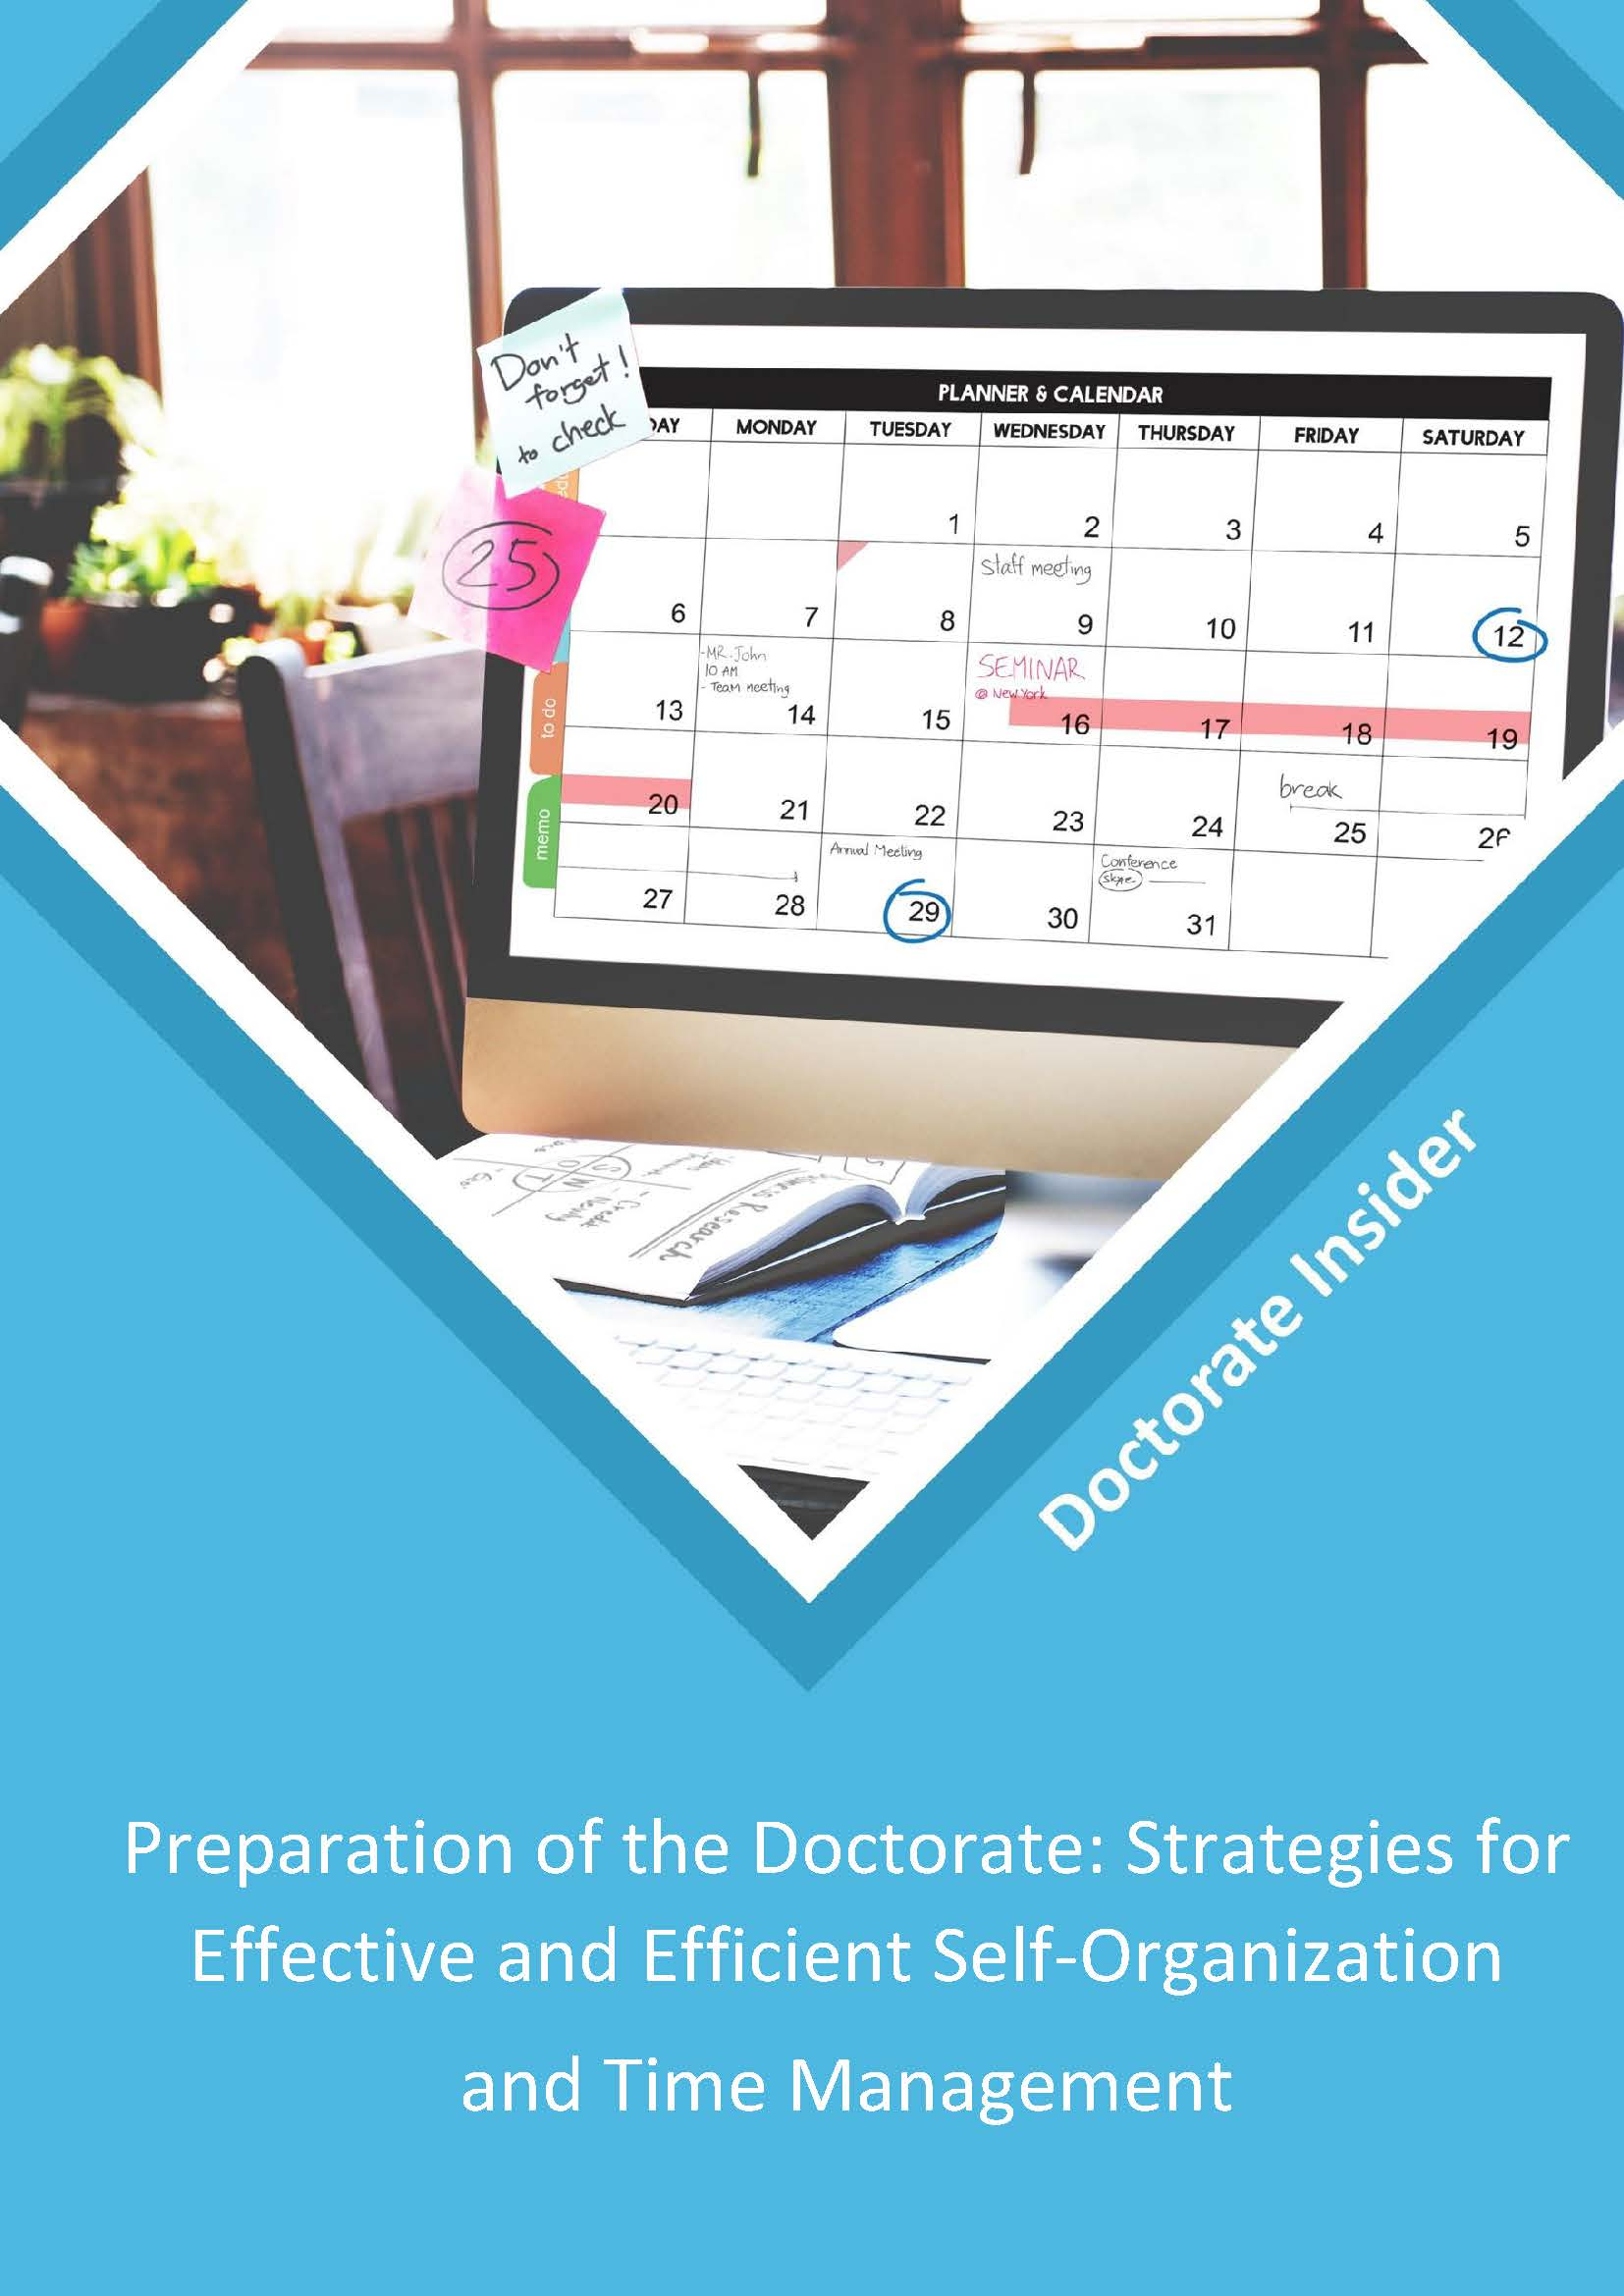 PREPARATION OF THE DOCTORATE: STRATEGIES FOR EFFECTIVE AND EFFICIENT SELF-ORGANIZATION AND TIME MANAGEMENT